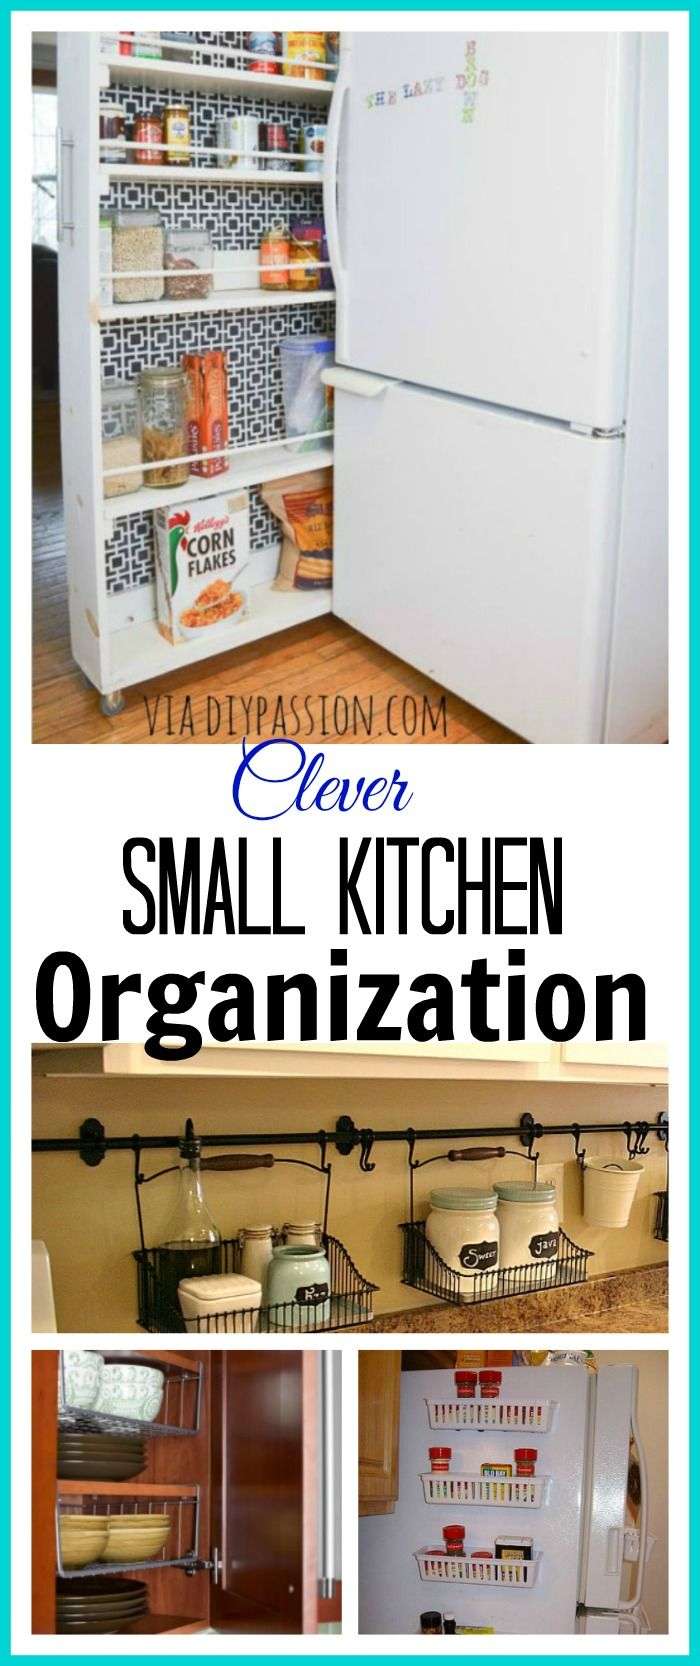 10 ideas for organizing a small kitchen diy kitchen storage small kitchen organization small on kitchen organization for small spaces id=71507